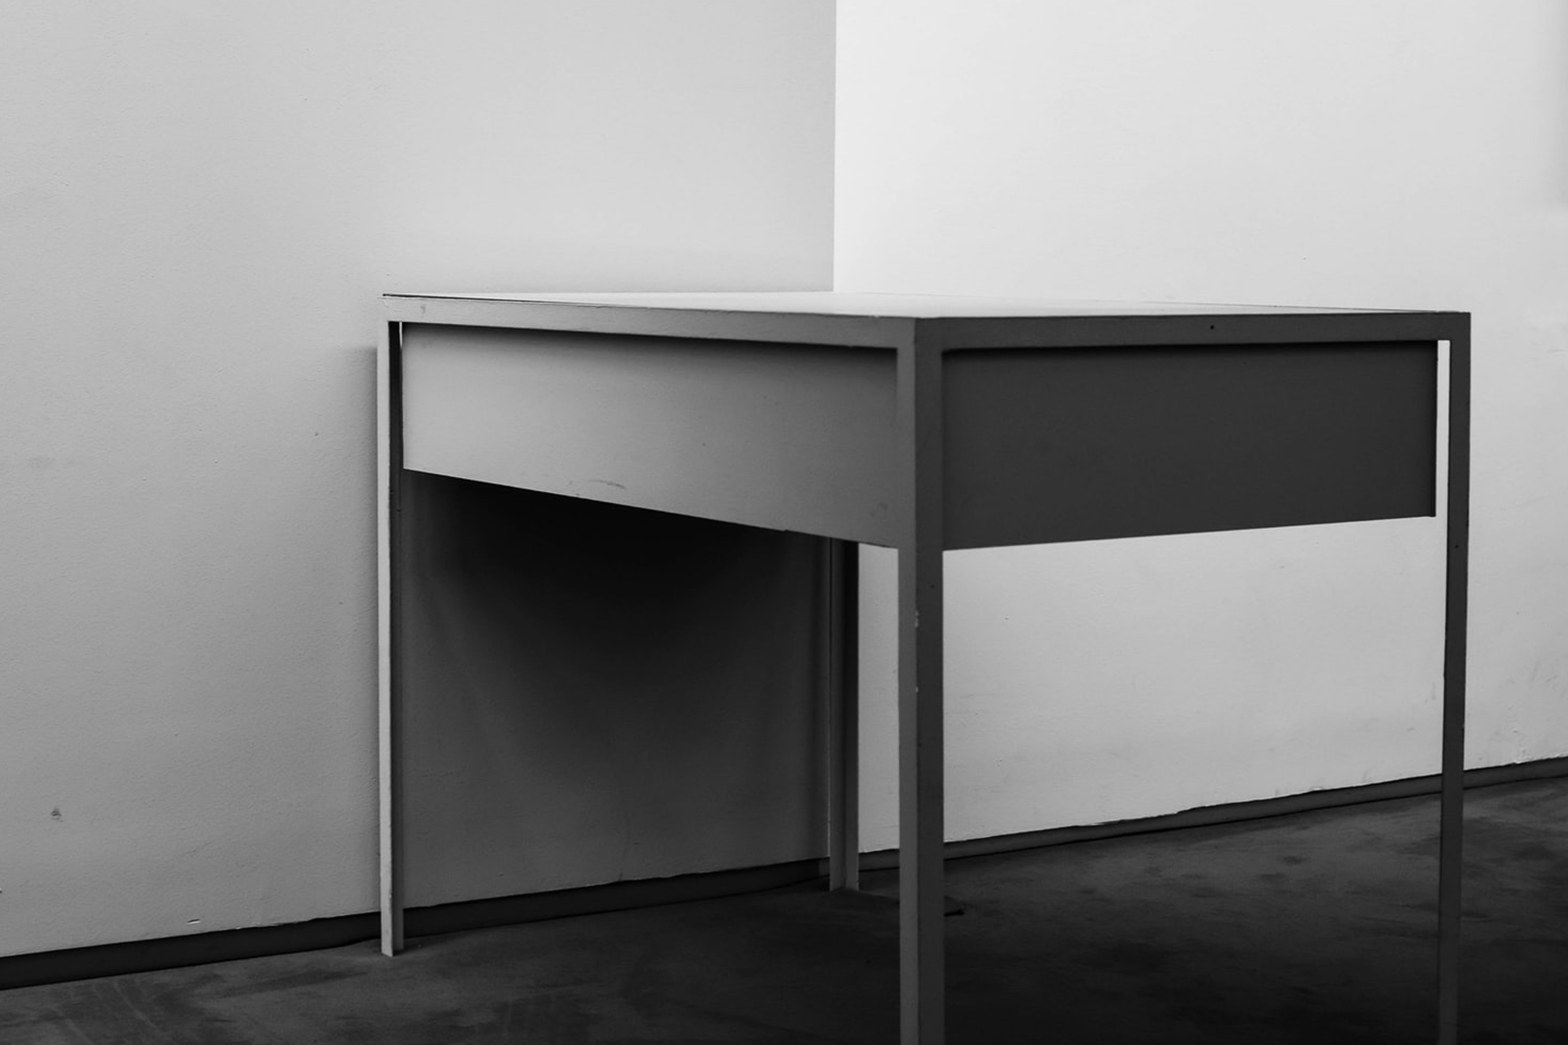 Minimalist table against a blank white wall